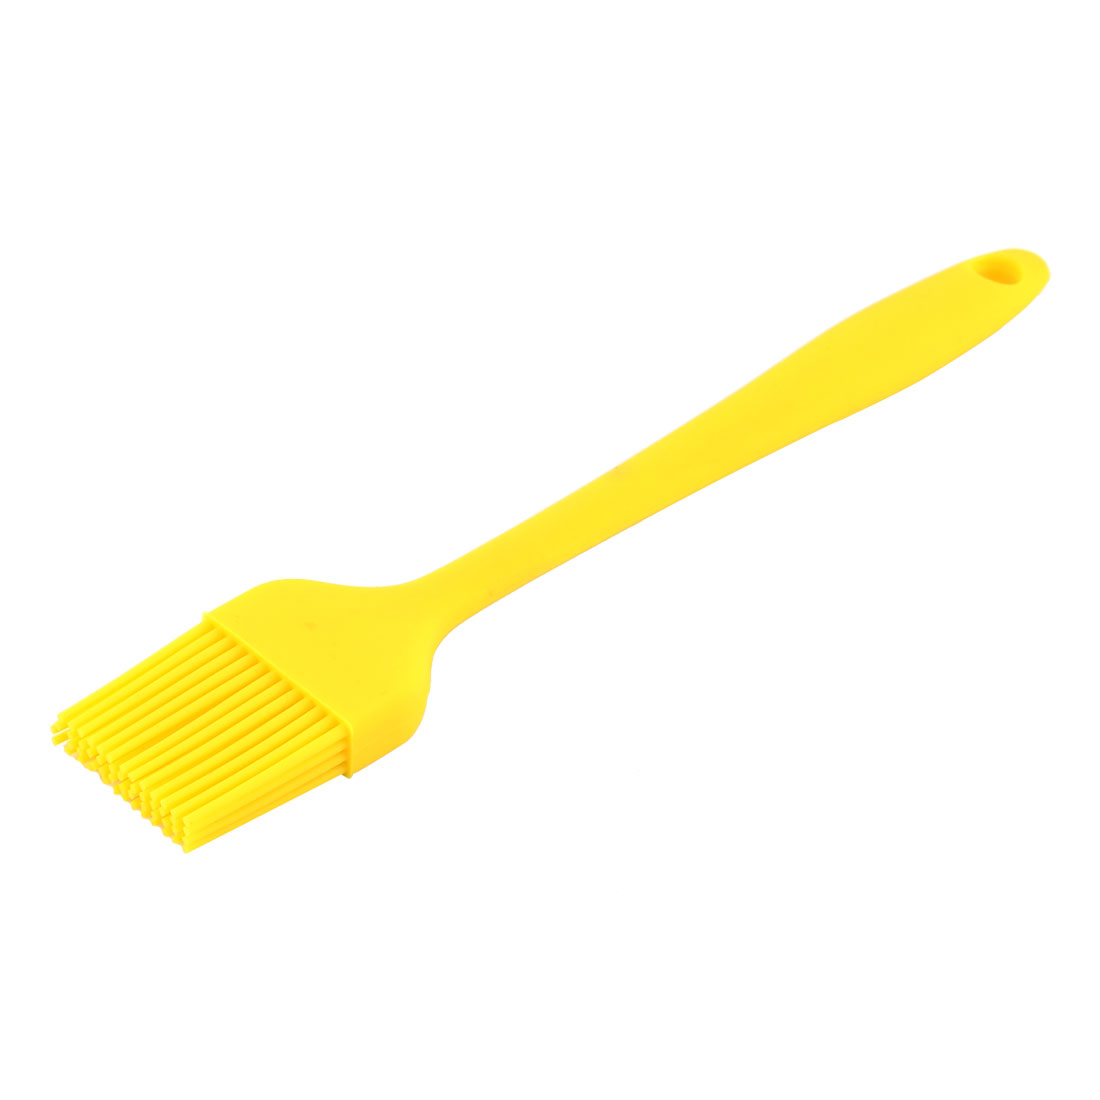 Silicone Heat Resistant Barbecue Grilling Basting Pastry Oil Brush Yellow